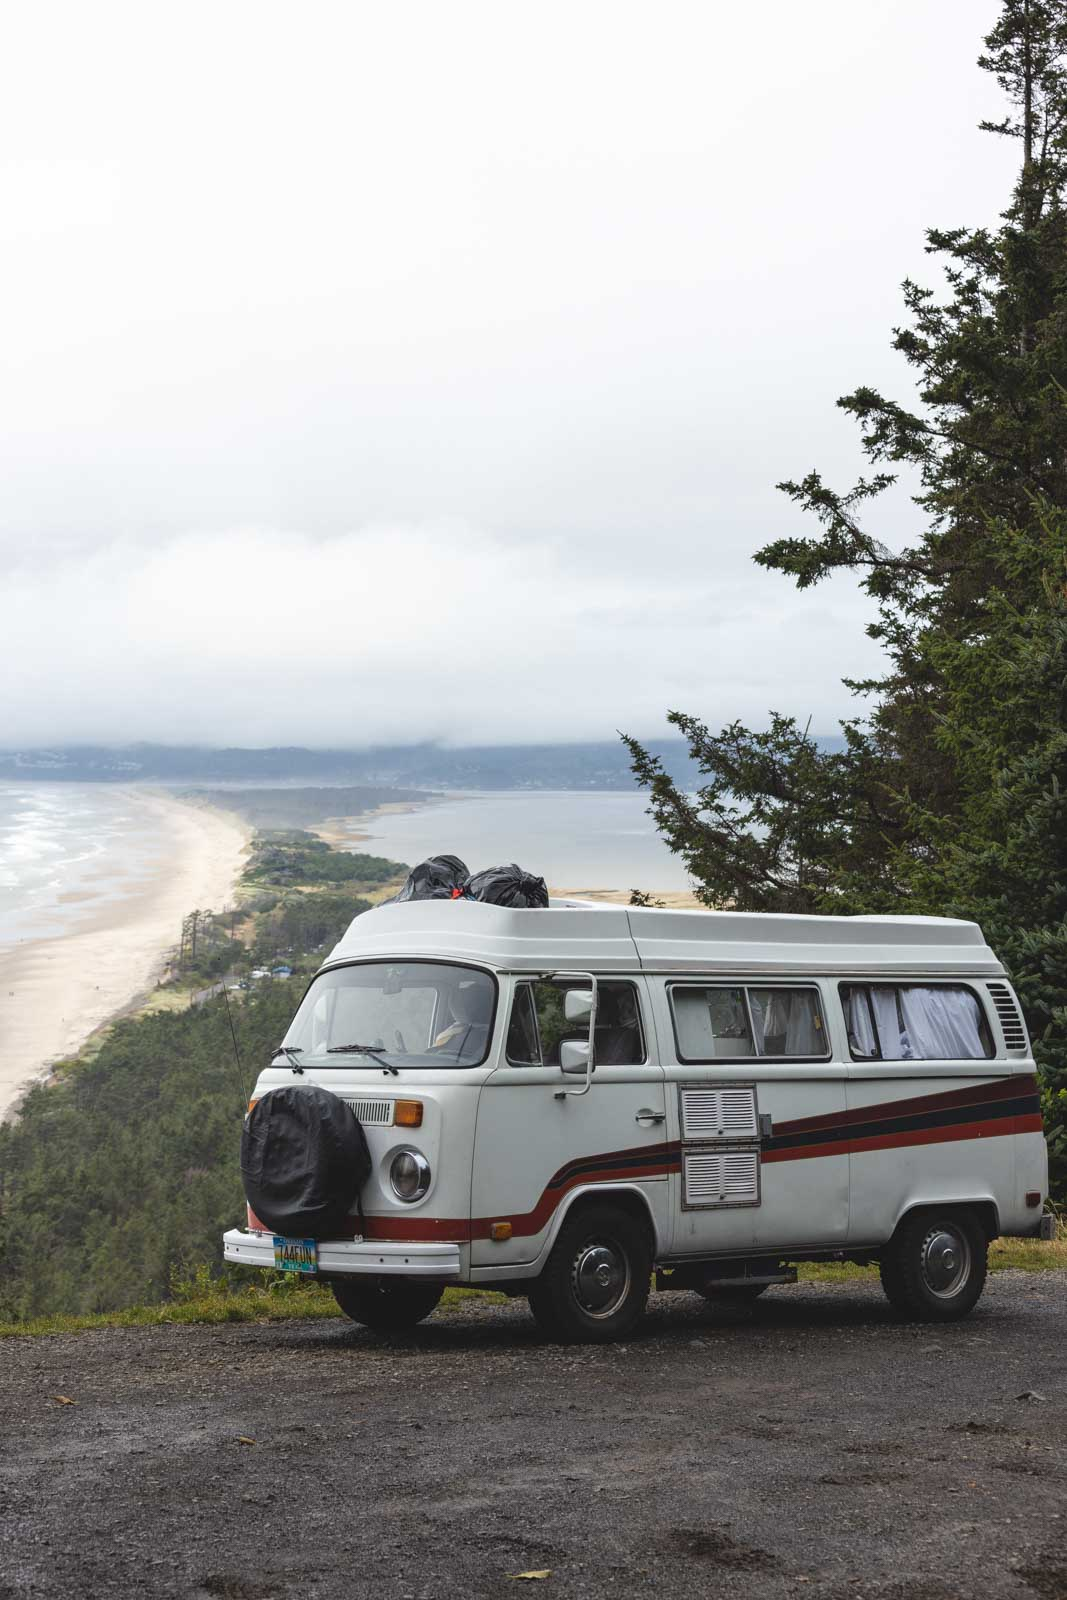 VW van in front of view of Cape Lookout State Park beach